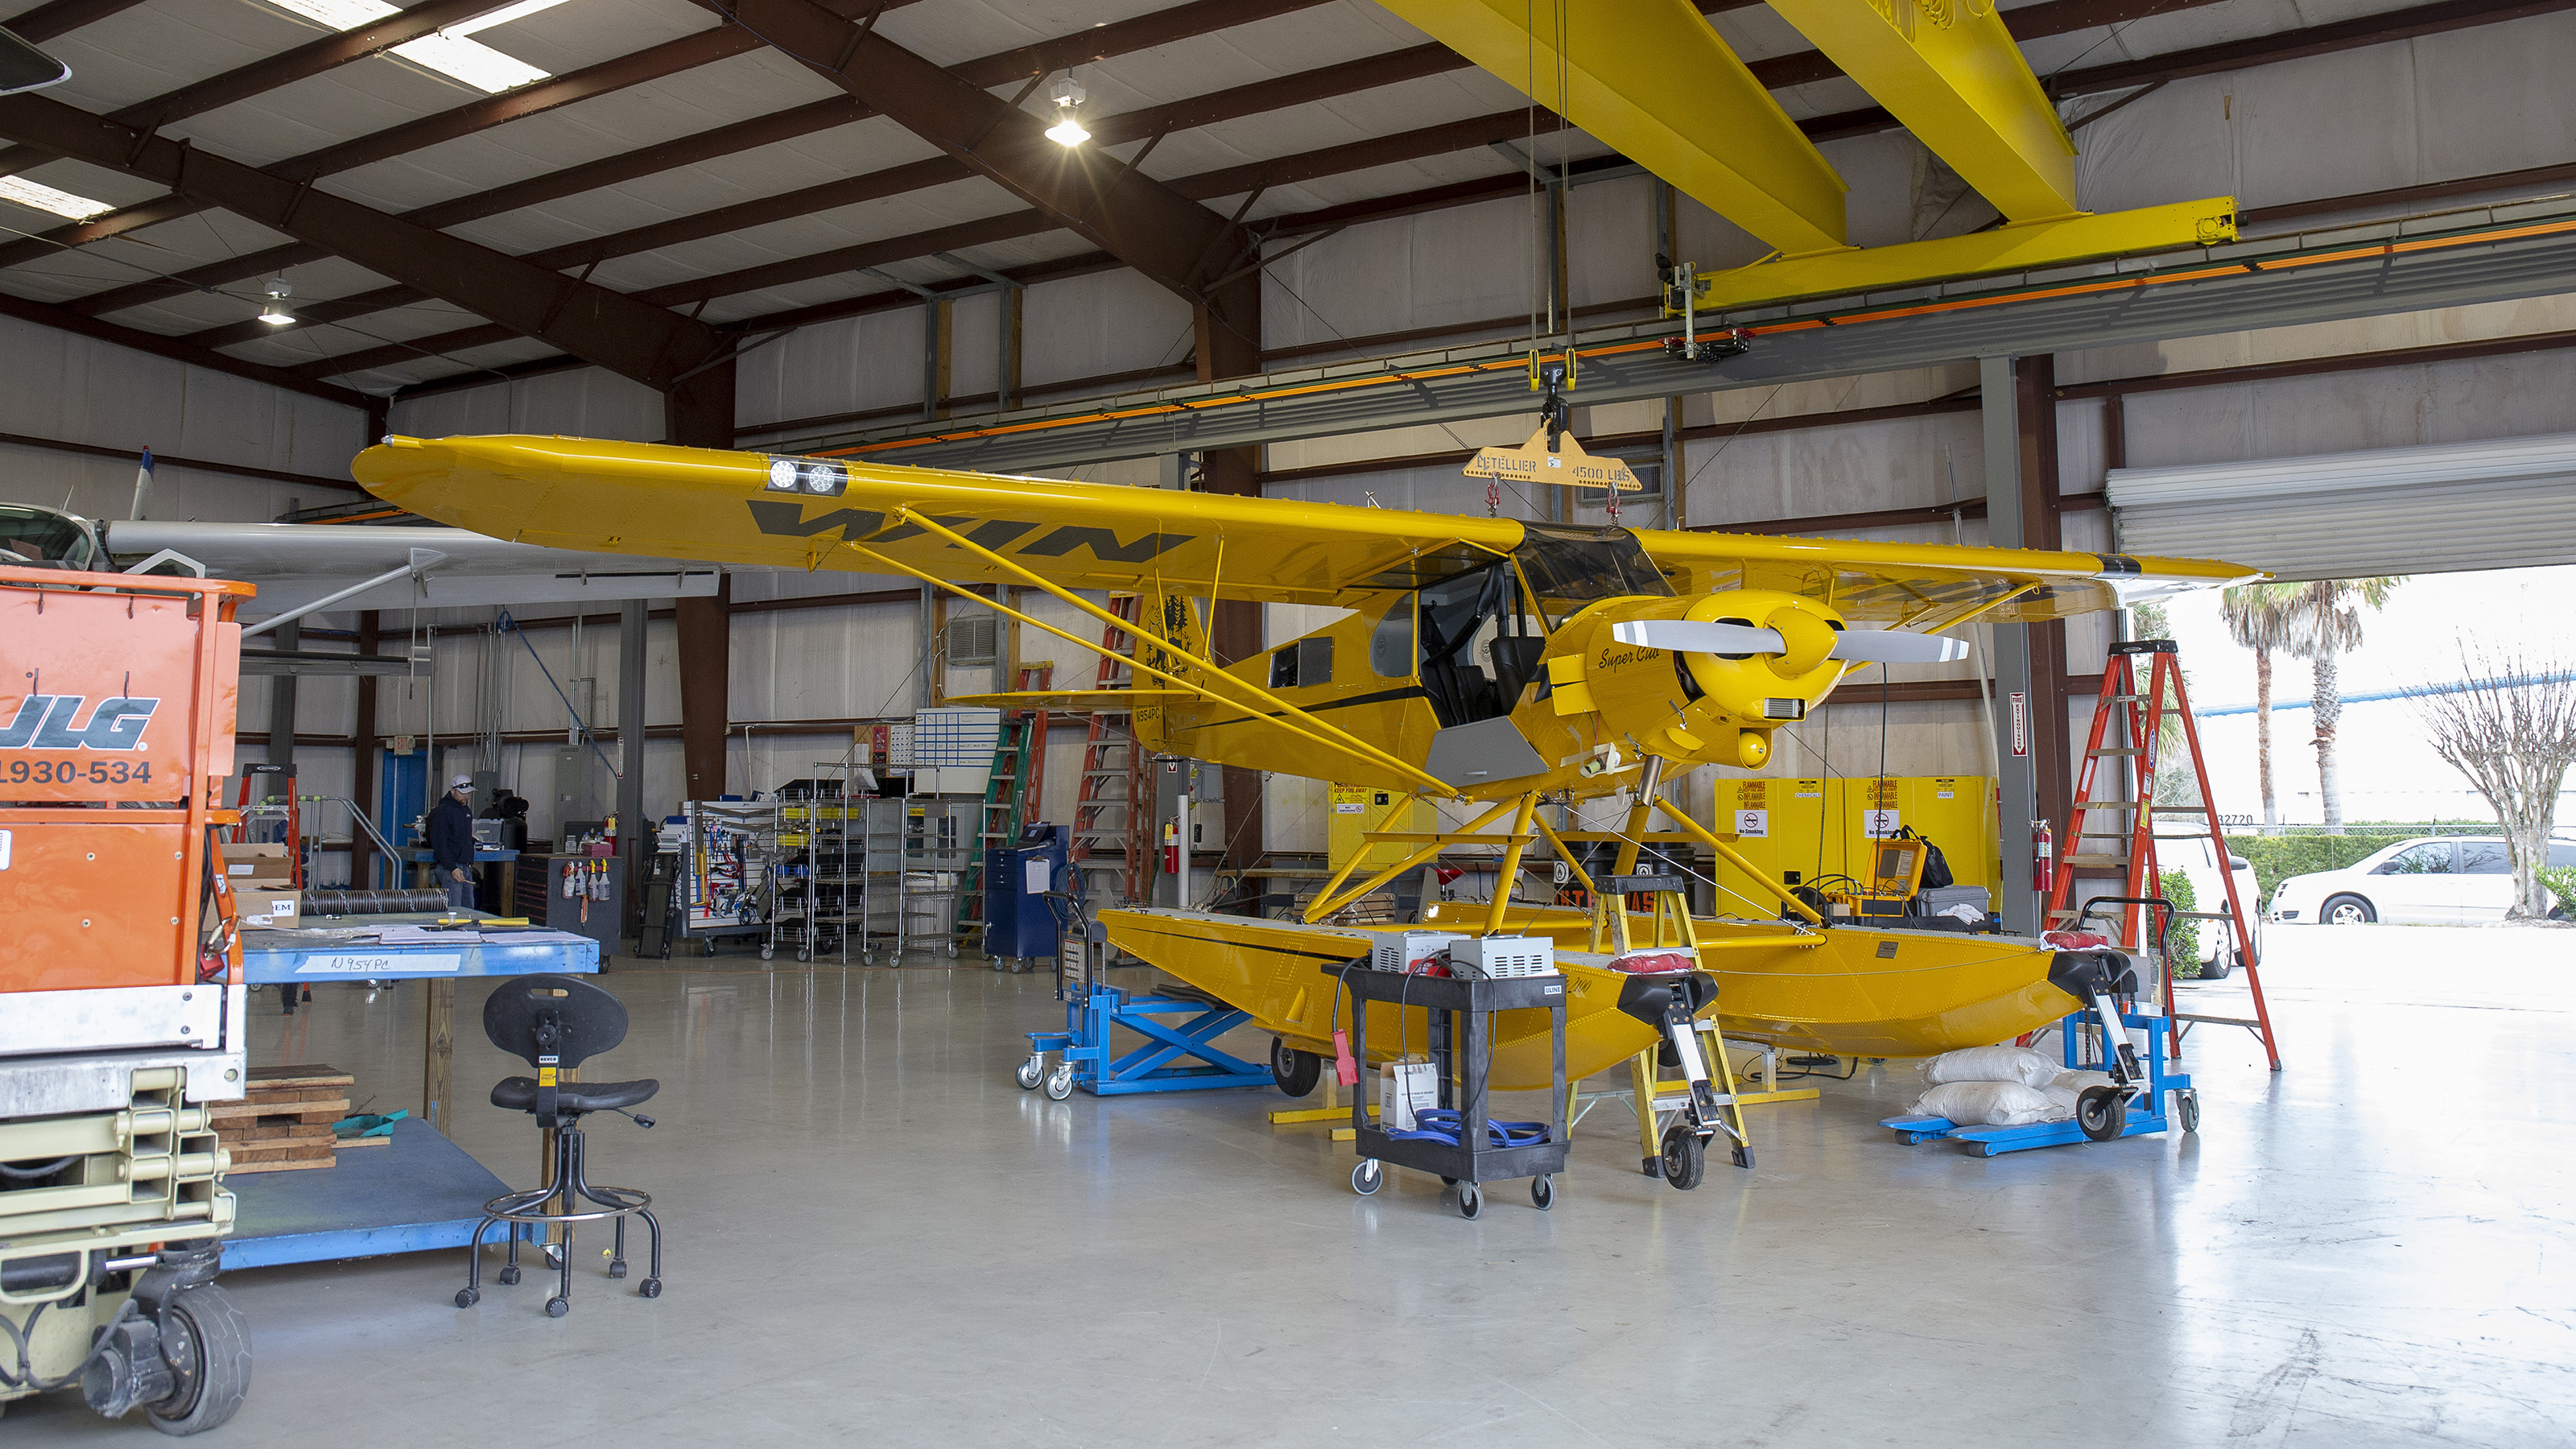 It's not every day you see an airplane suspended in a hangar, unless you work at Wipaire's Leesburg, Florida, facility where they install floats on aircraft. Wipaire installed its Wipline 2100 amphibious floats on the AOPA Sweepstakes Super Cub.